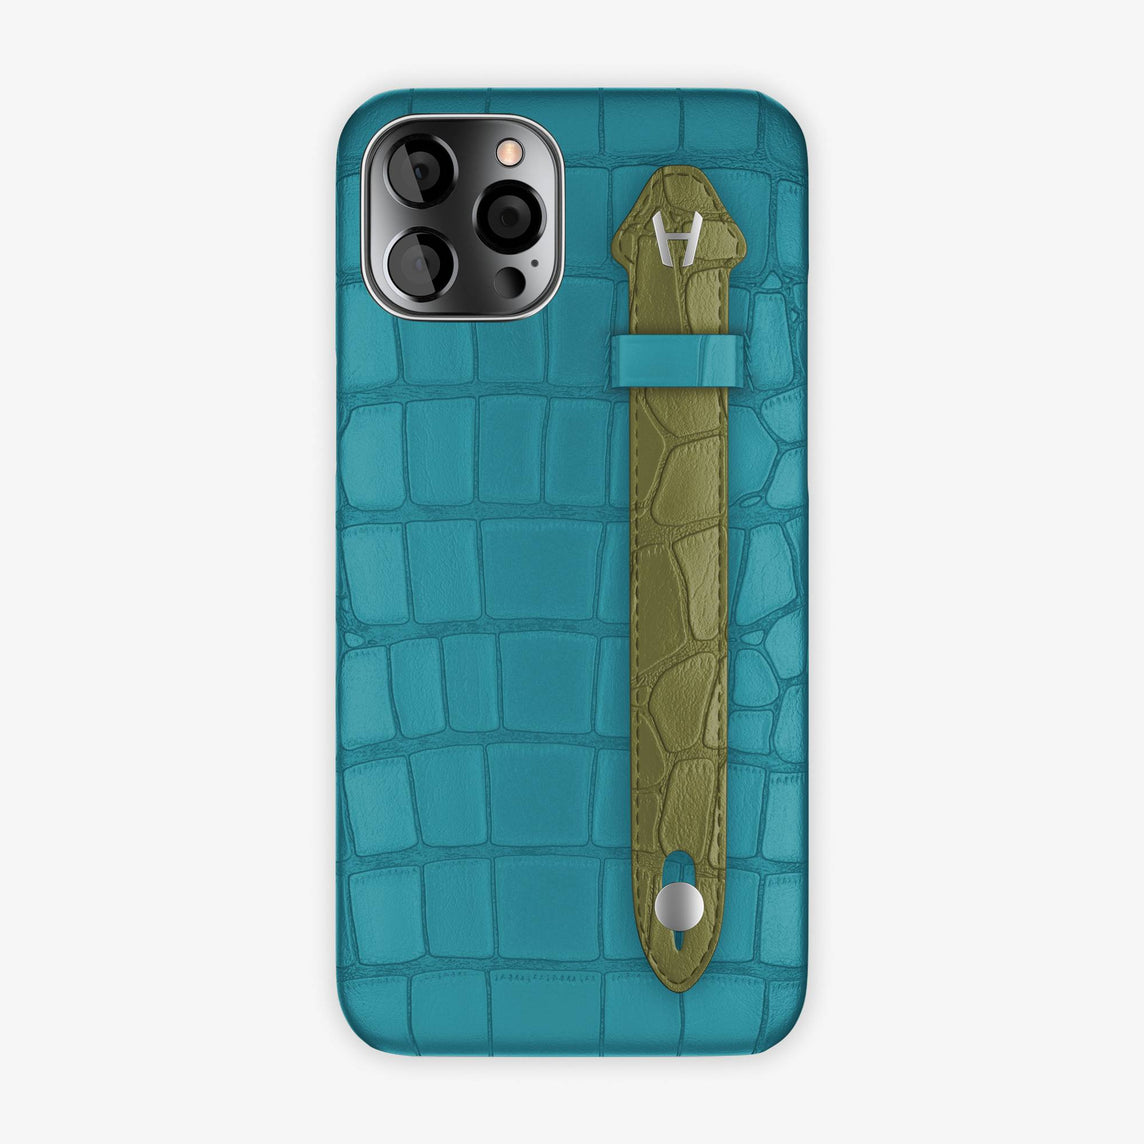 Alligator Side Finger Case iPhone 12 Pro Max | Blue Teal/Khaki - Stainless Steel